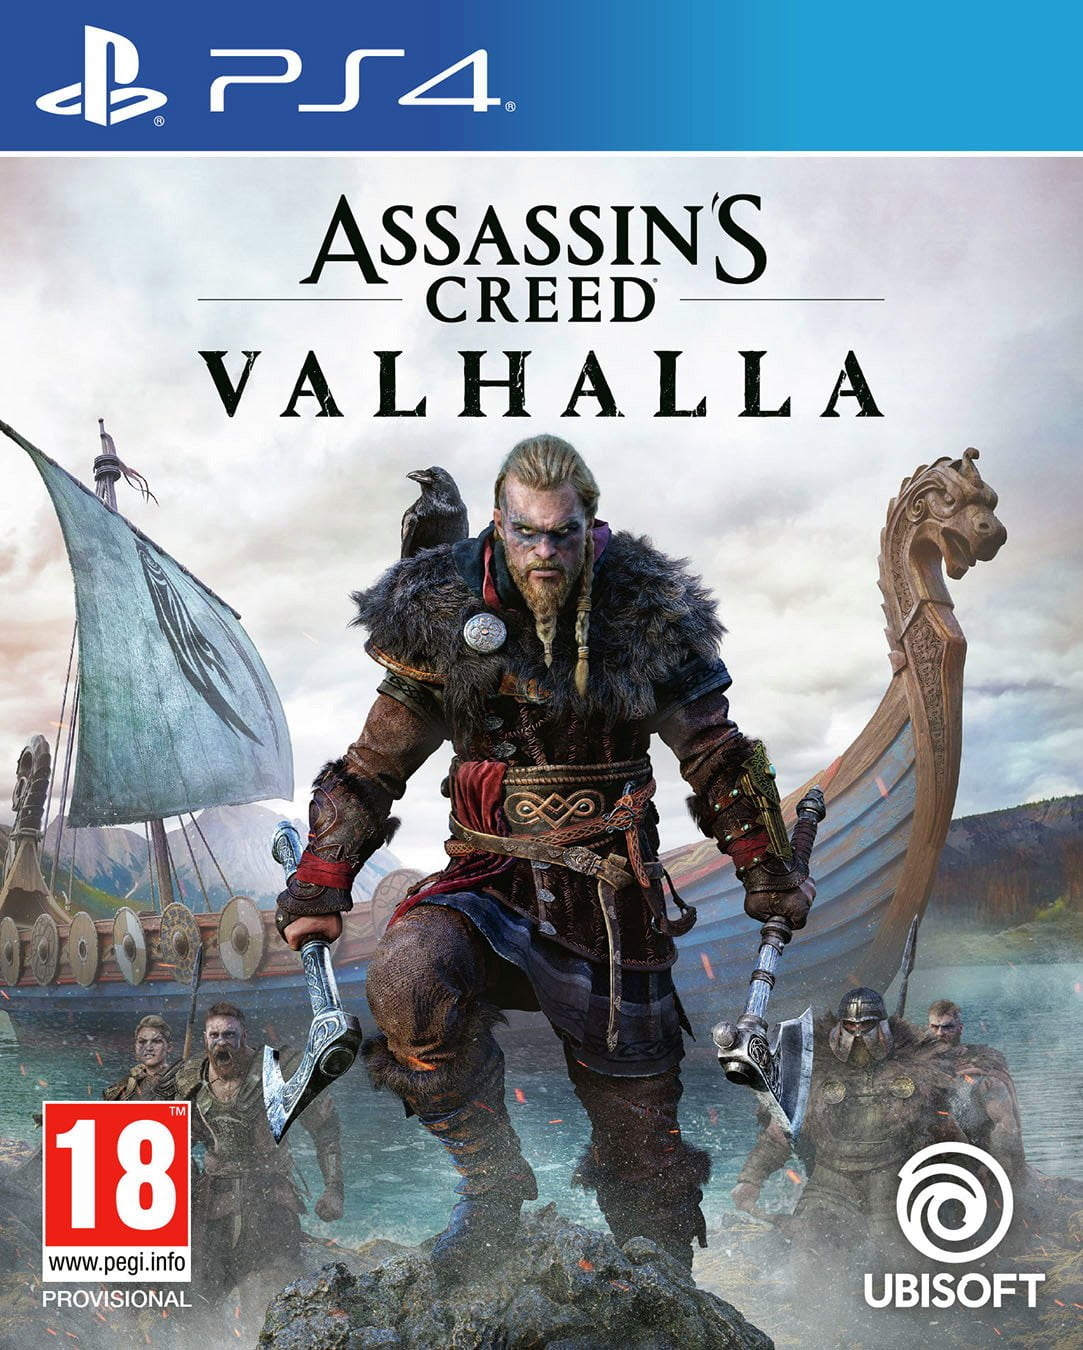 Assassin's Creed Valhalla PS4 Game Pre-Order